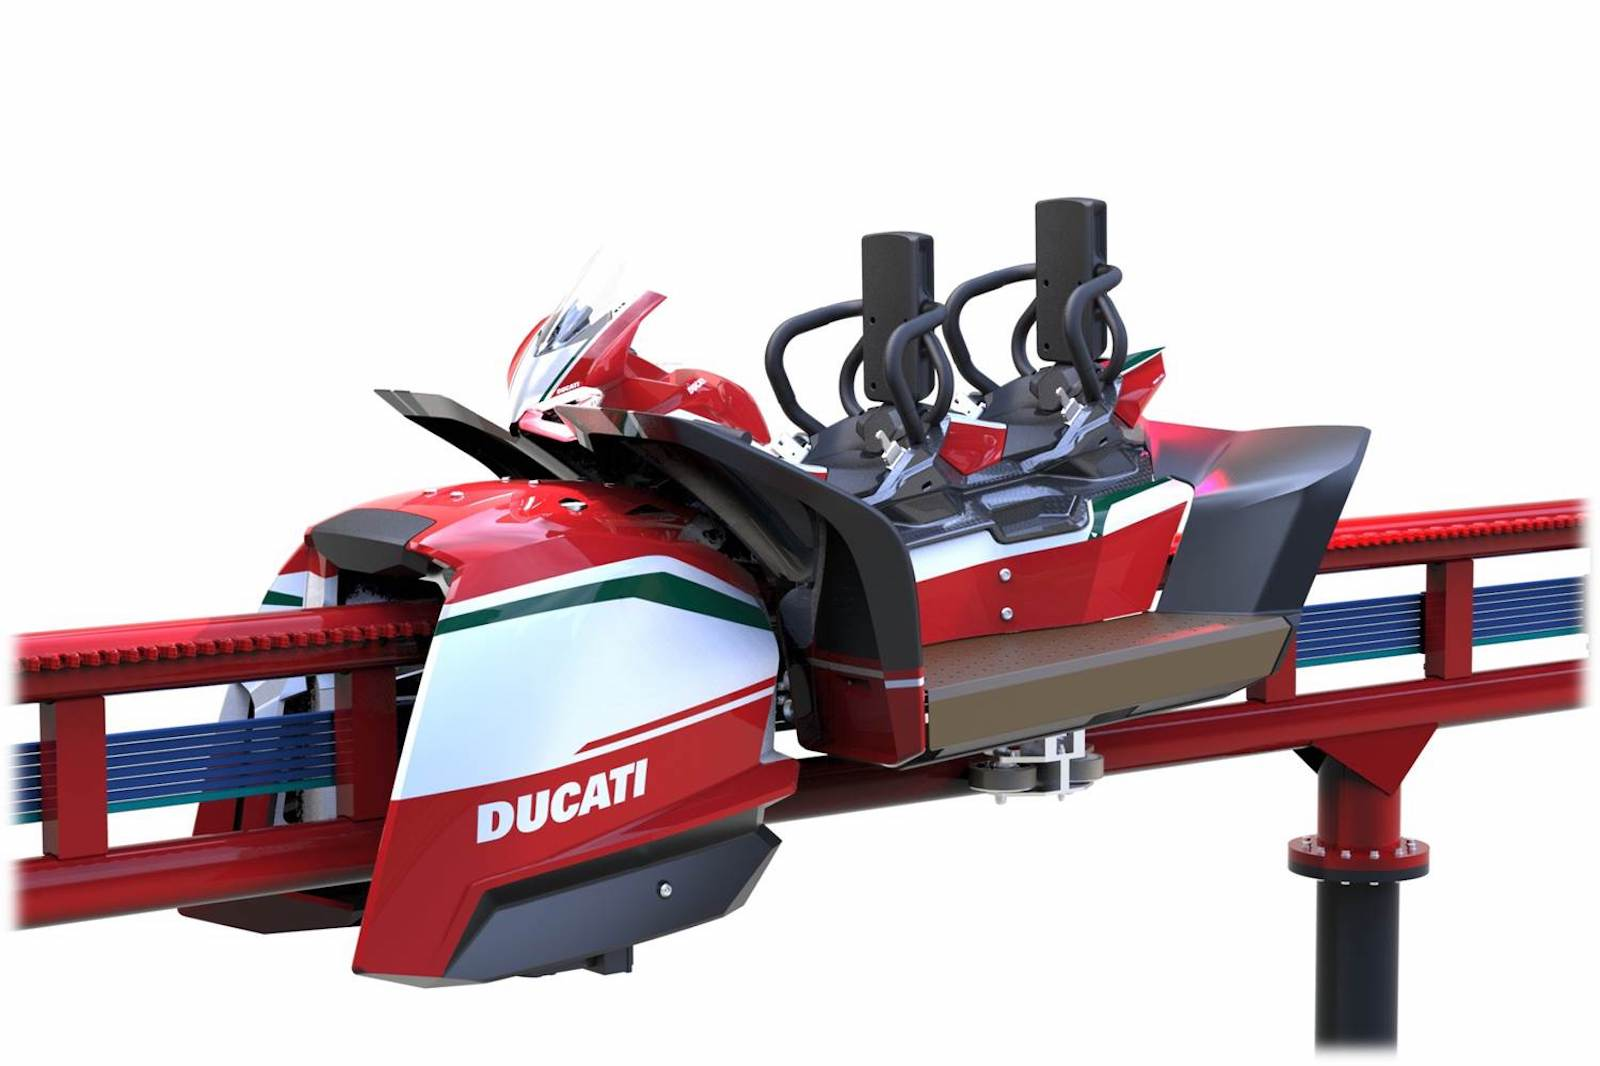 Ducati World theme park